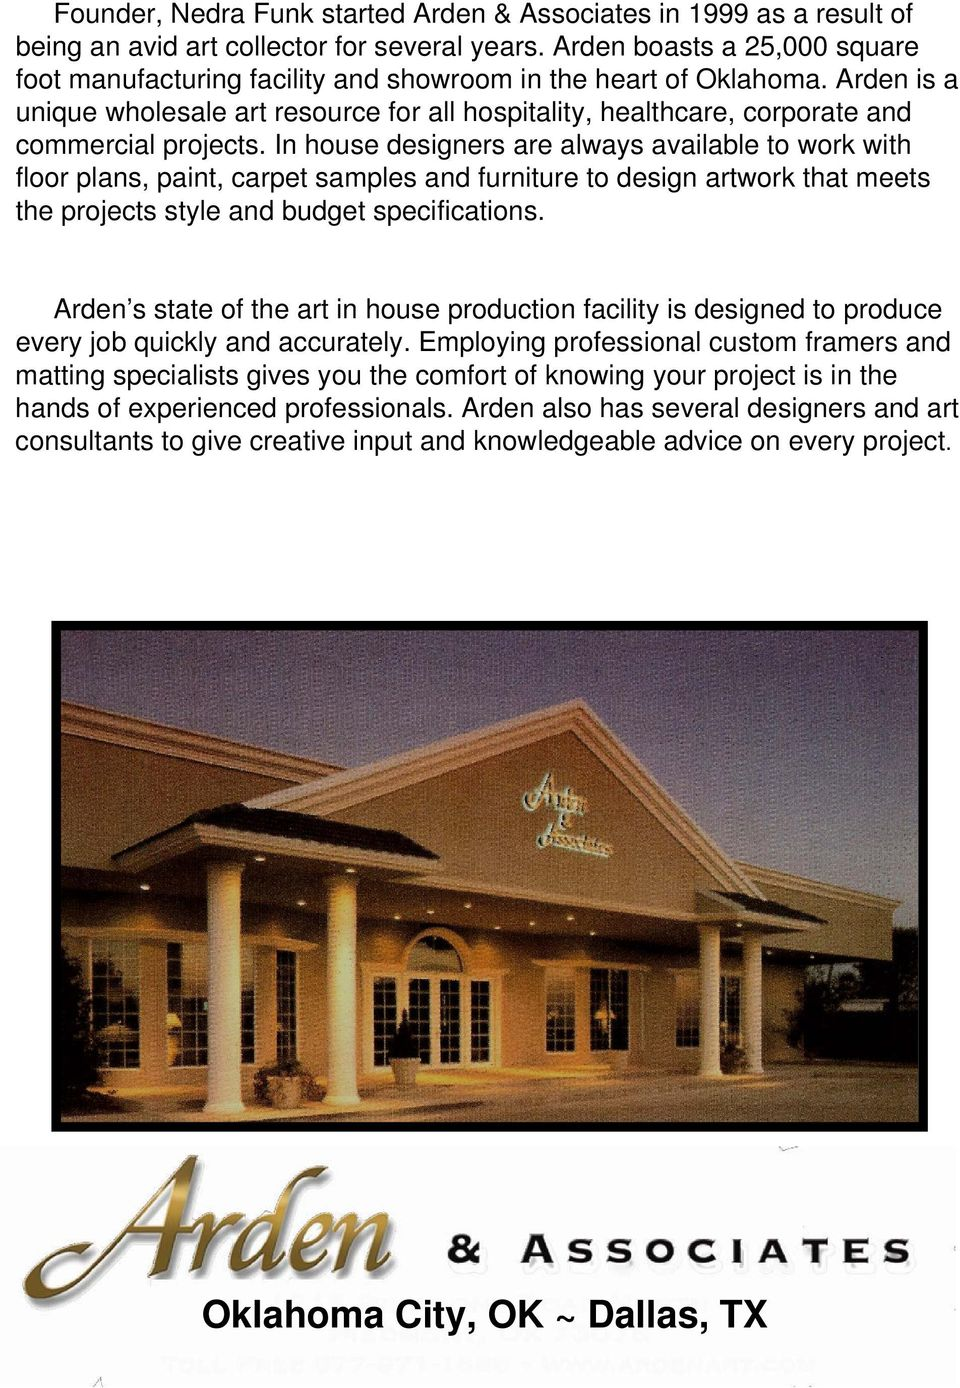 Arden is a unique wholesale art resource for all hospitality, healthcare, corporate and commercial projects.